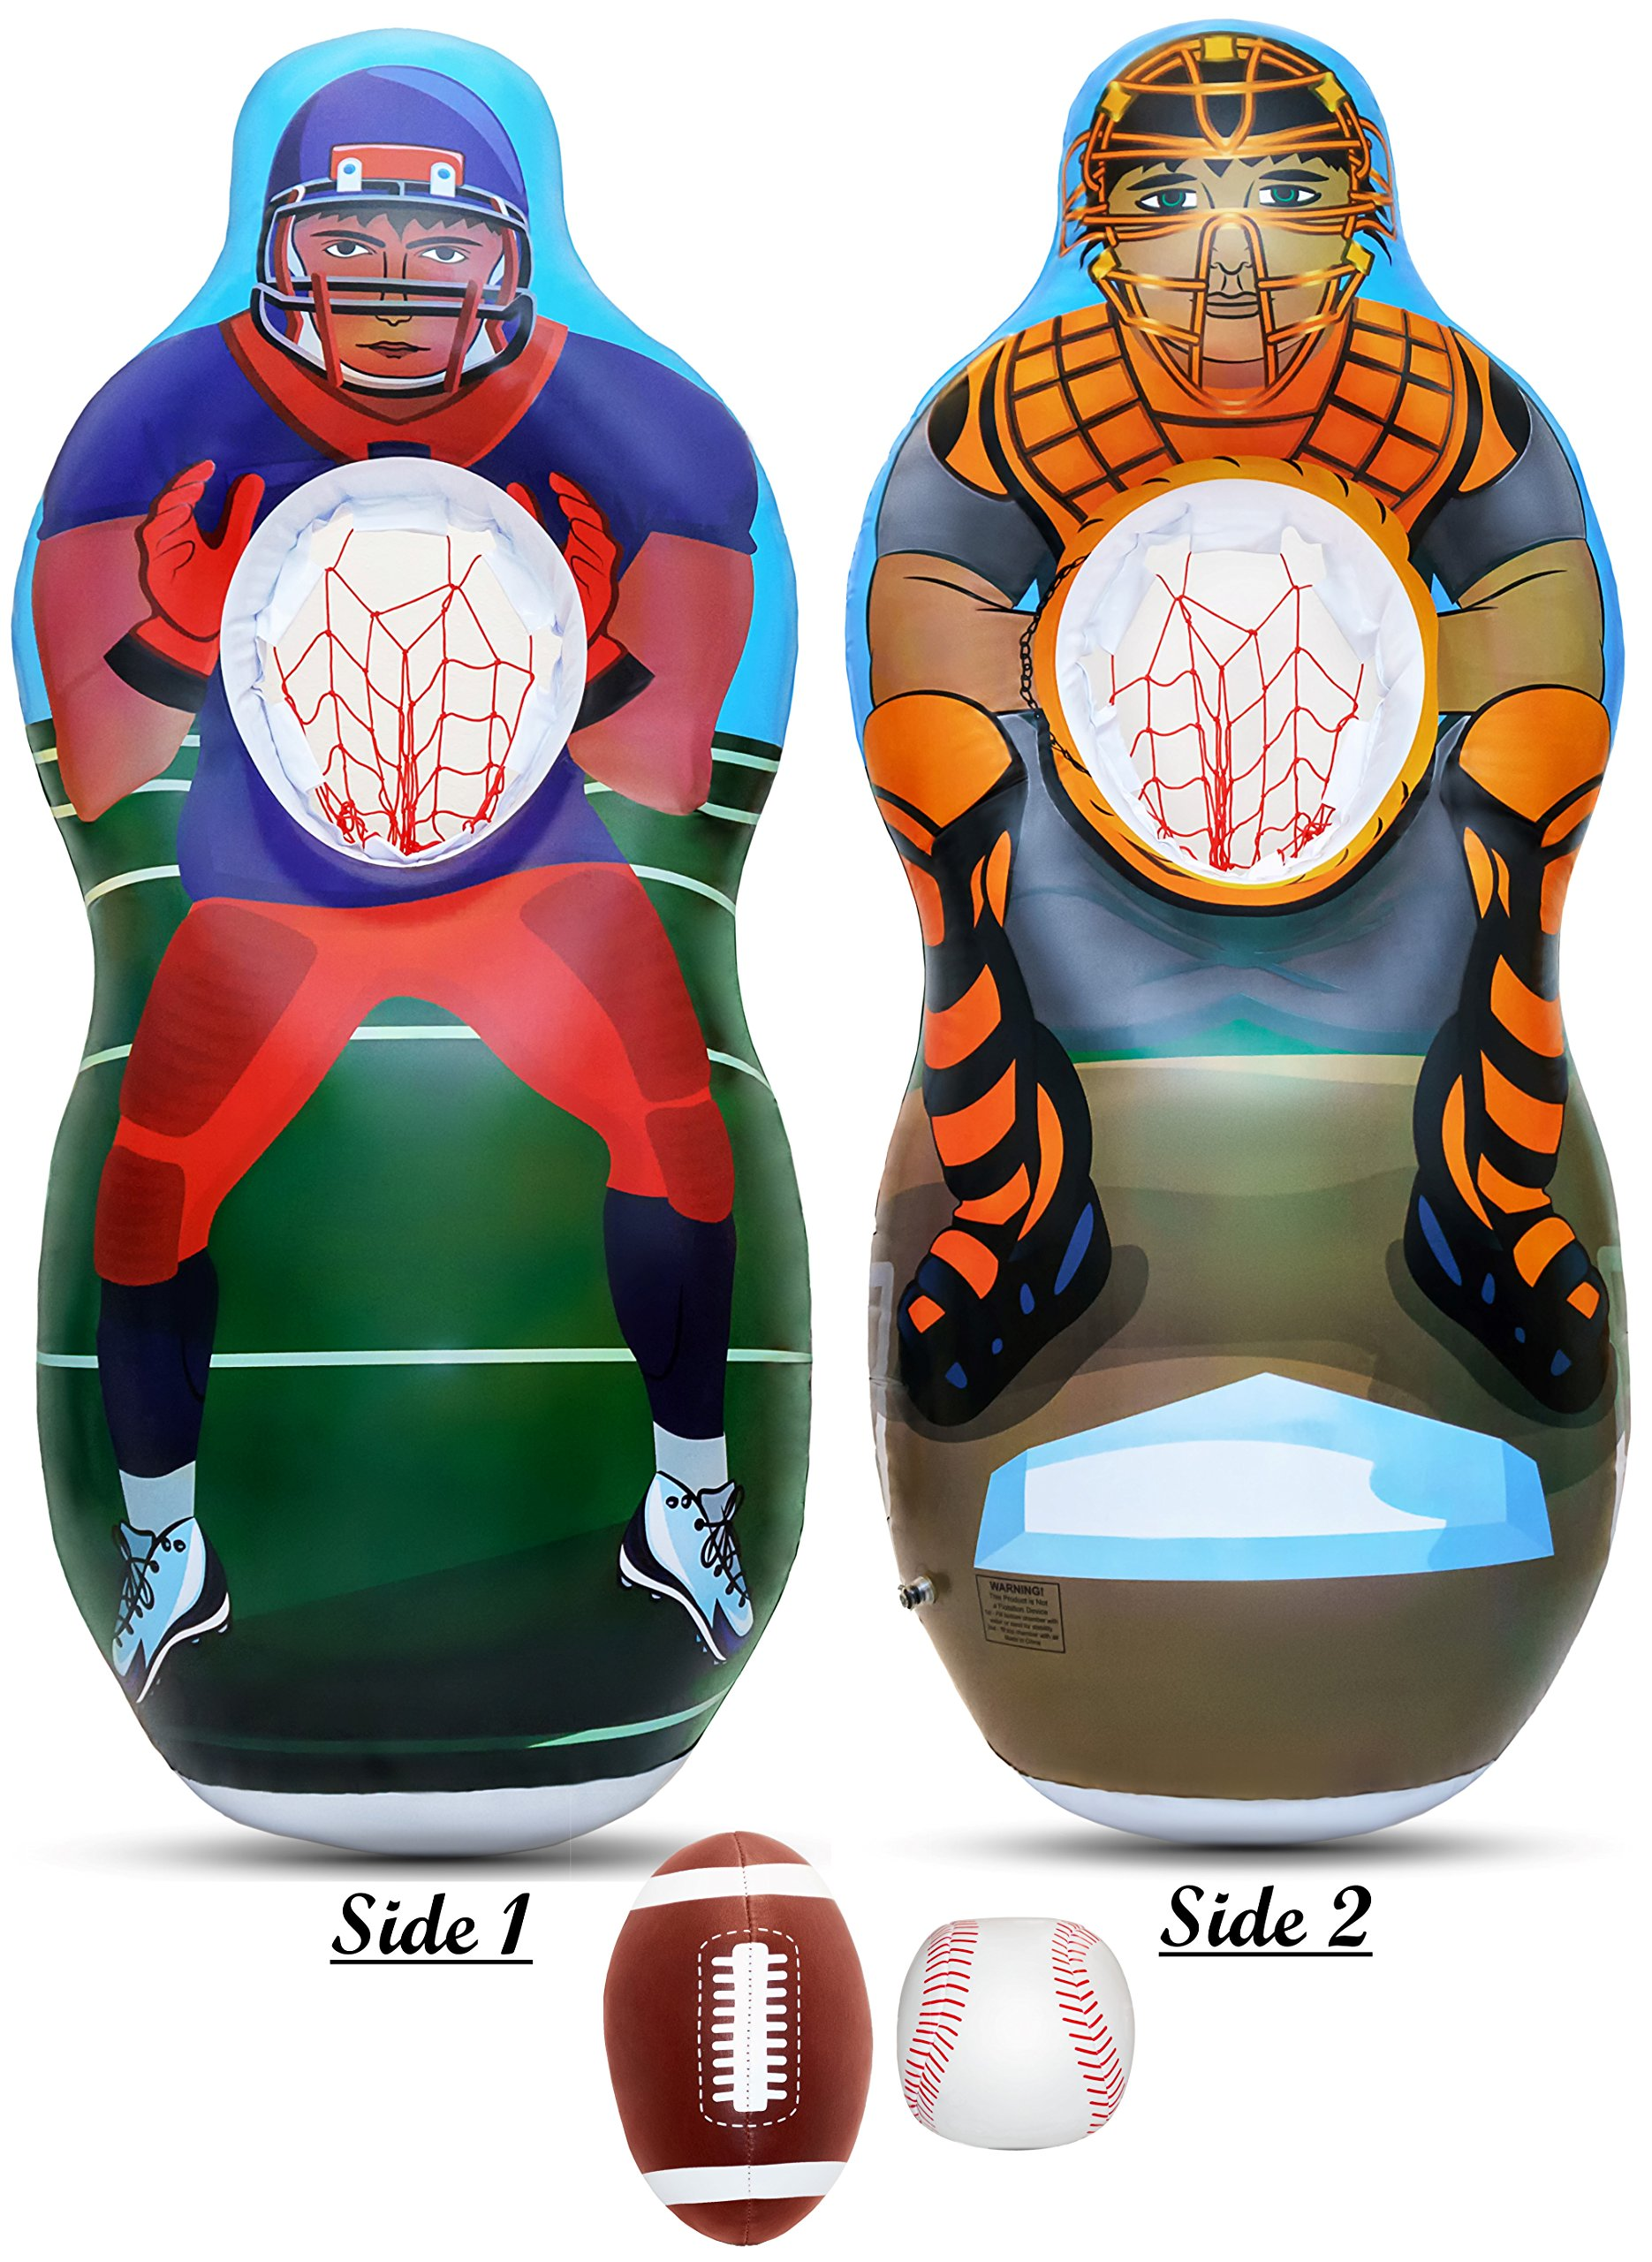 809e9fa3ce4a Get Quotations · Inflatable Two Sided Football & Baseball Target Set -  Includes One Inflatable 5 Foot Tall Target